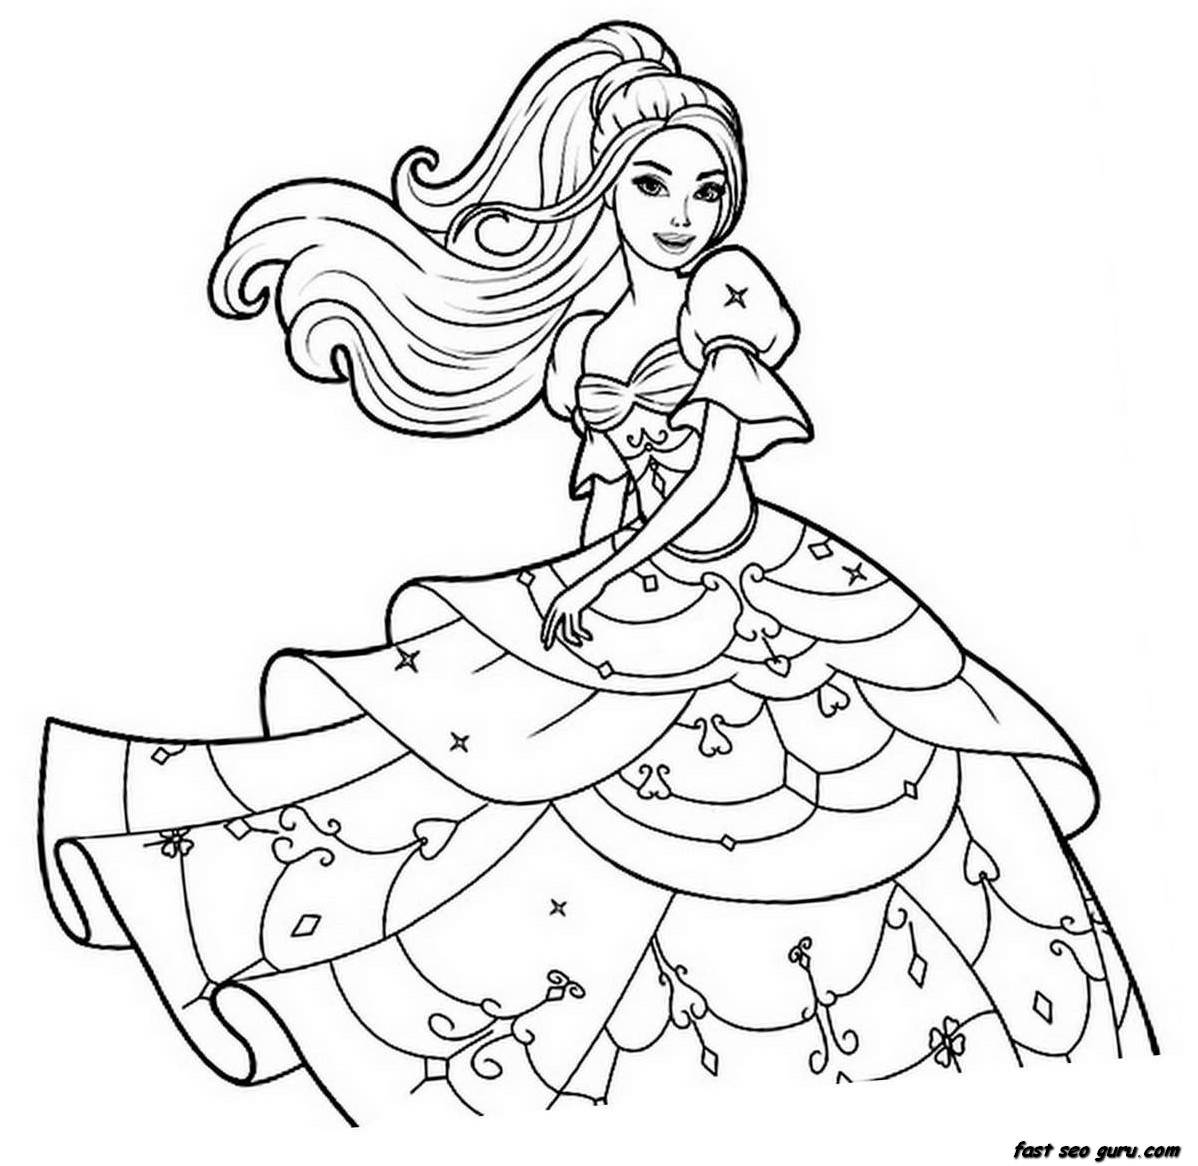 New Girls Coloring Pages 53 In Coloring Books With Girls Coloring